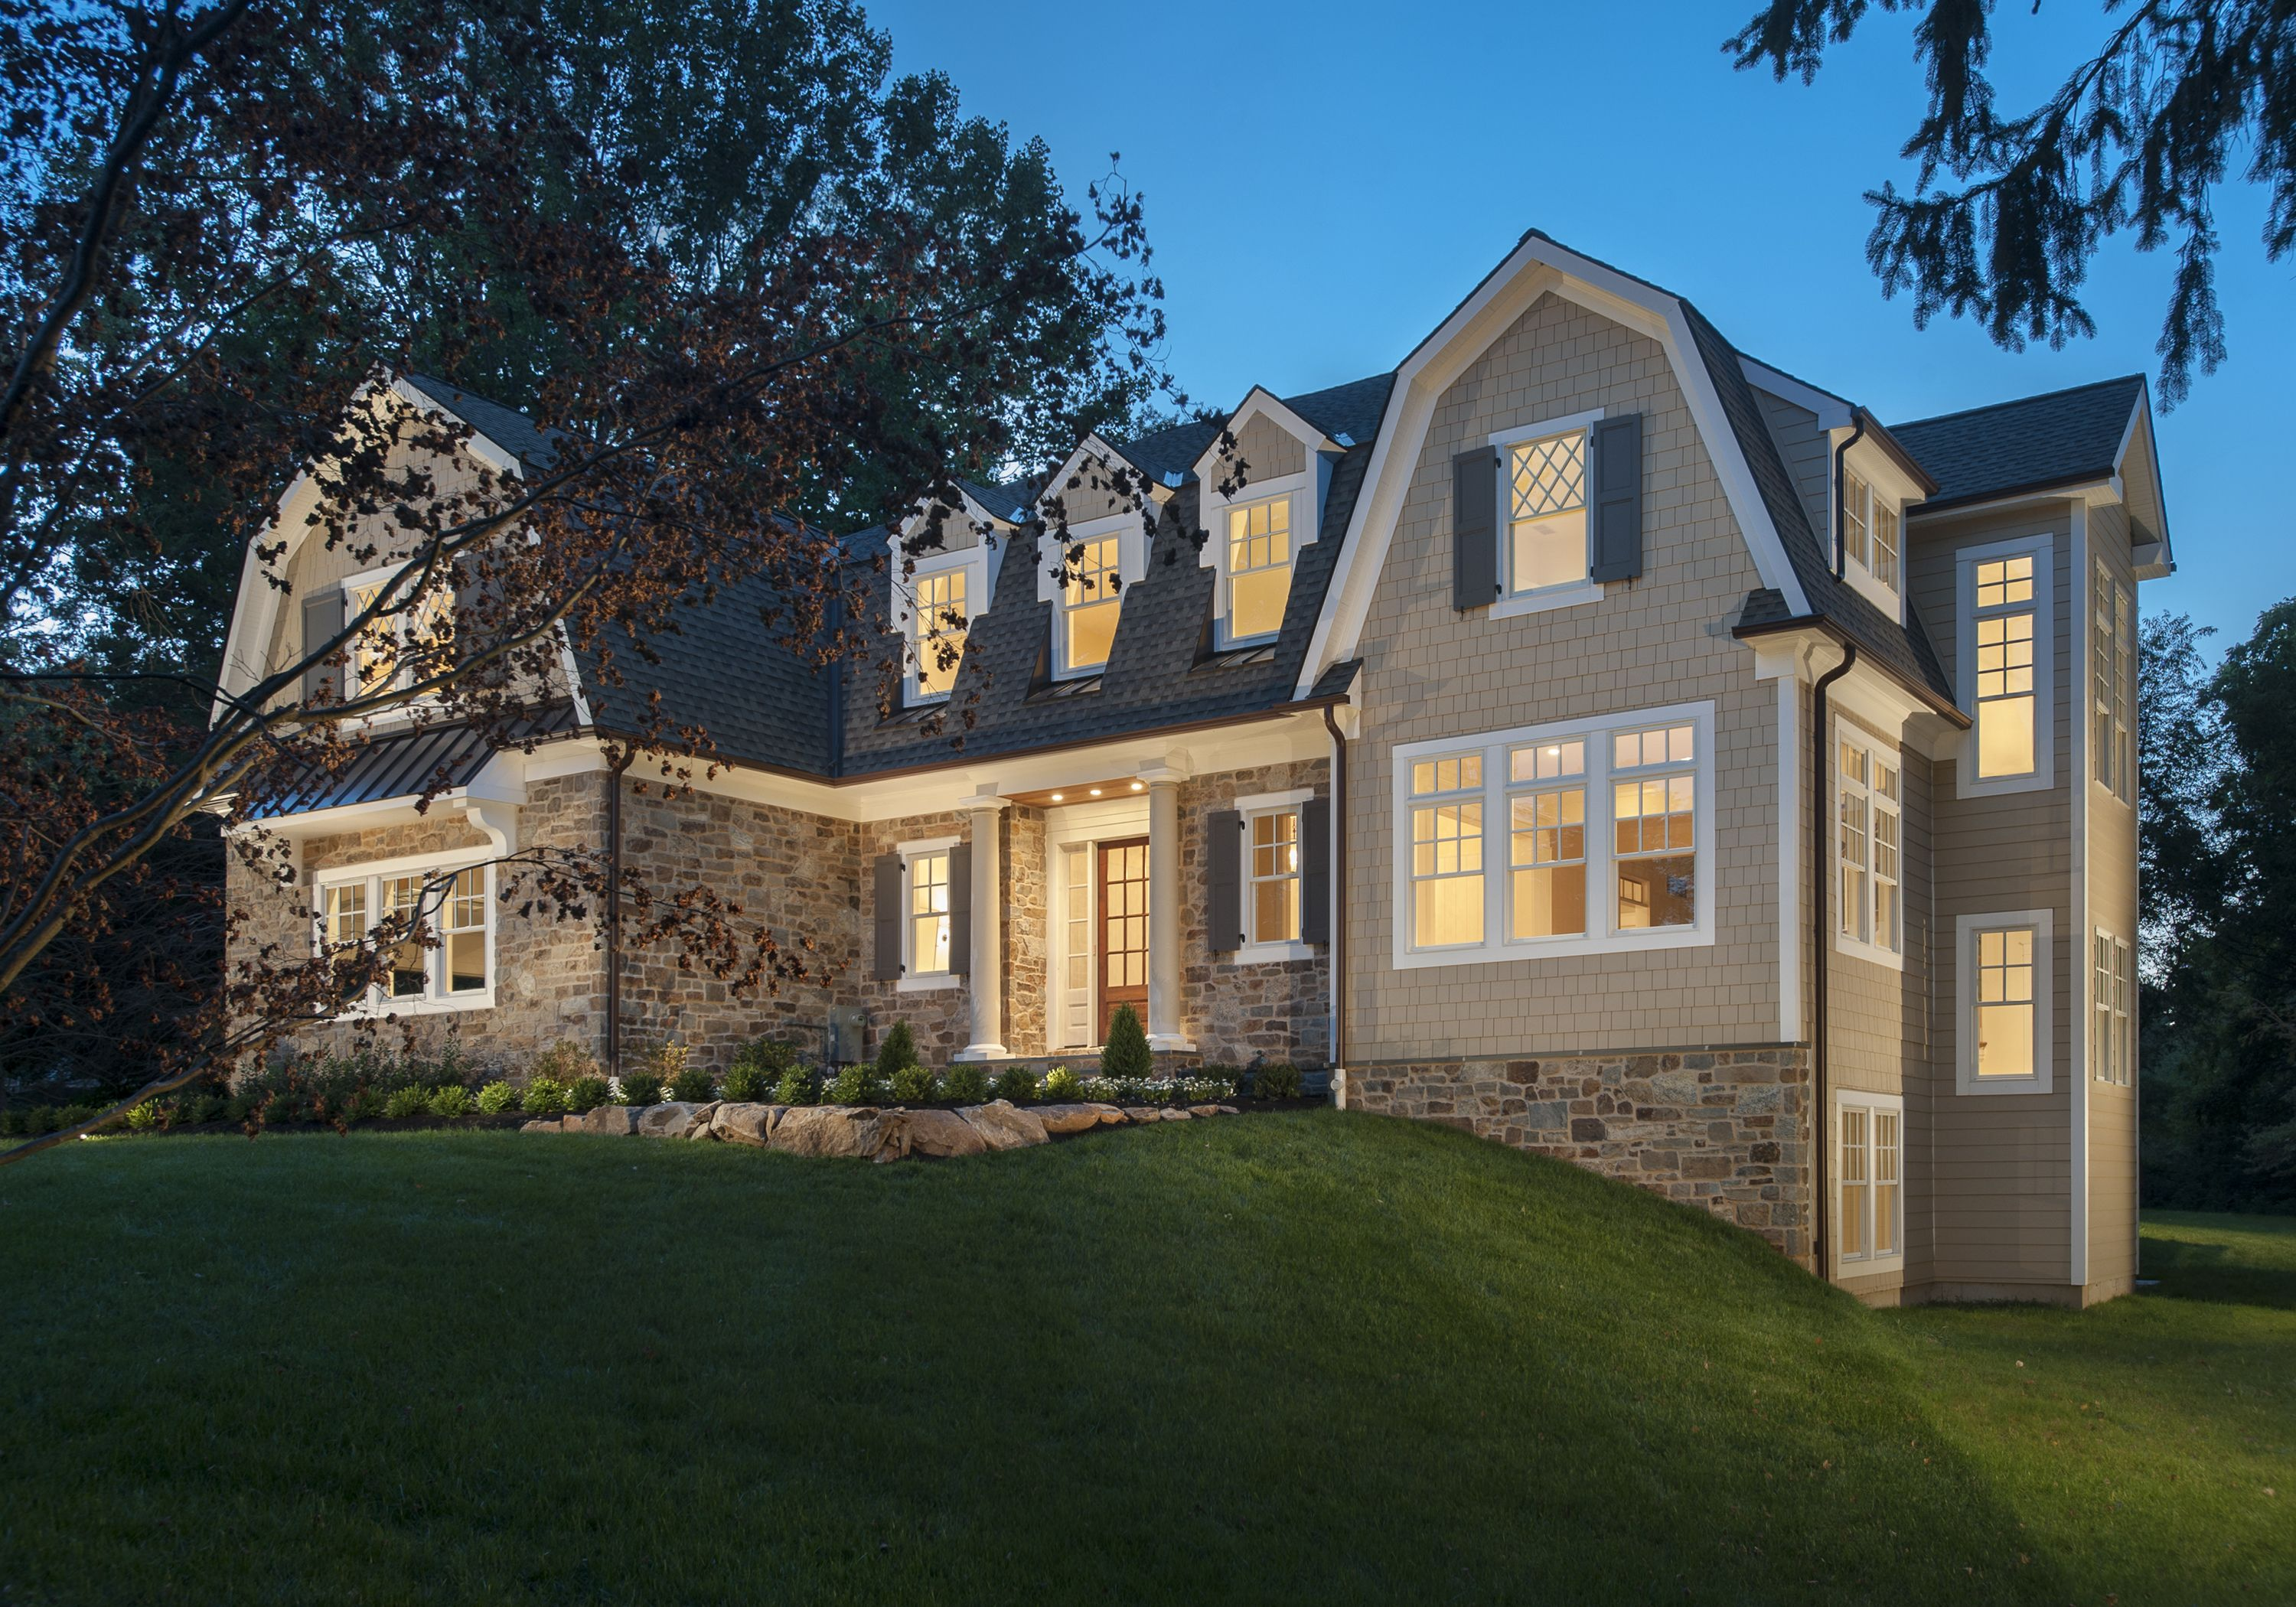 Completed Nantucket Style Home at Millbrook Rd. (2014) by Weiss & Associates, LLC (Radnor, PA)